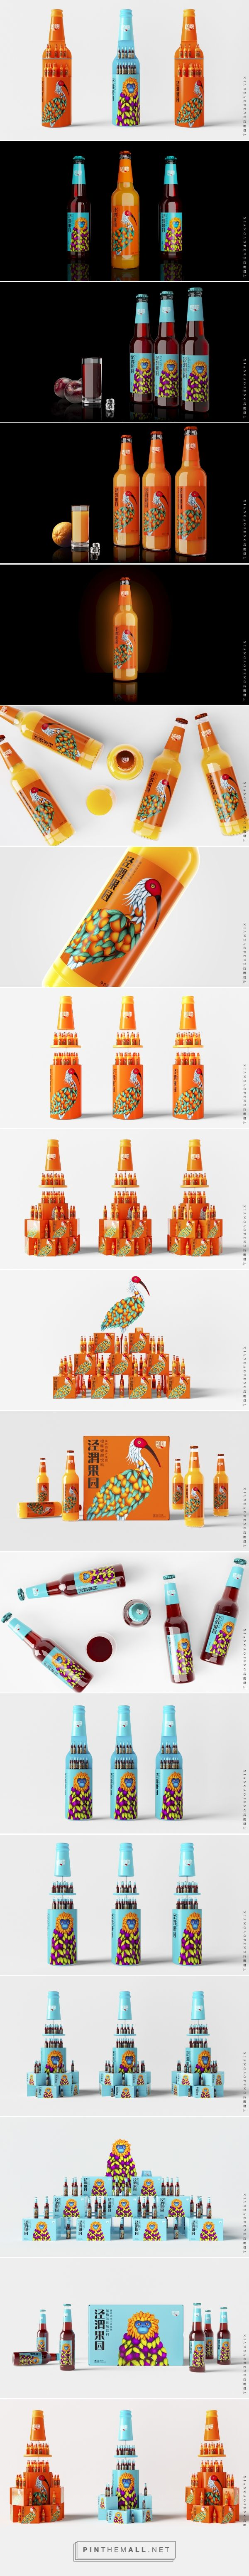 That Hi - Jing Wei Orchard Series (beer and fruit juice, I think) by JING WEI GUO YUAN. Source: xiangaopeng.com. Pin curated by#SFields99 #packaging #design #inspiration #ideas #product #creative #consumer #alcoholic #beverages #drinks #beer #juice #fruit #color #illustration #bottle #box #display #pointofsale #pos